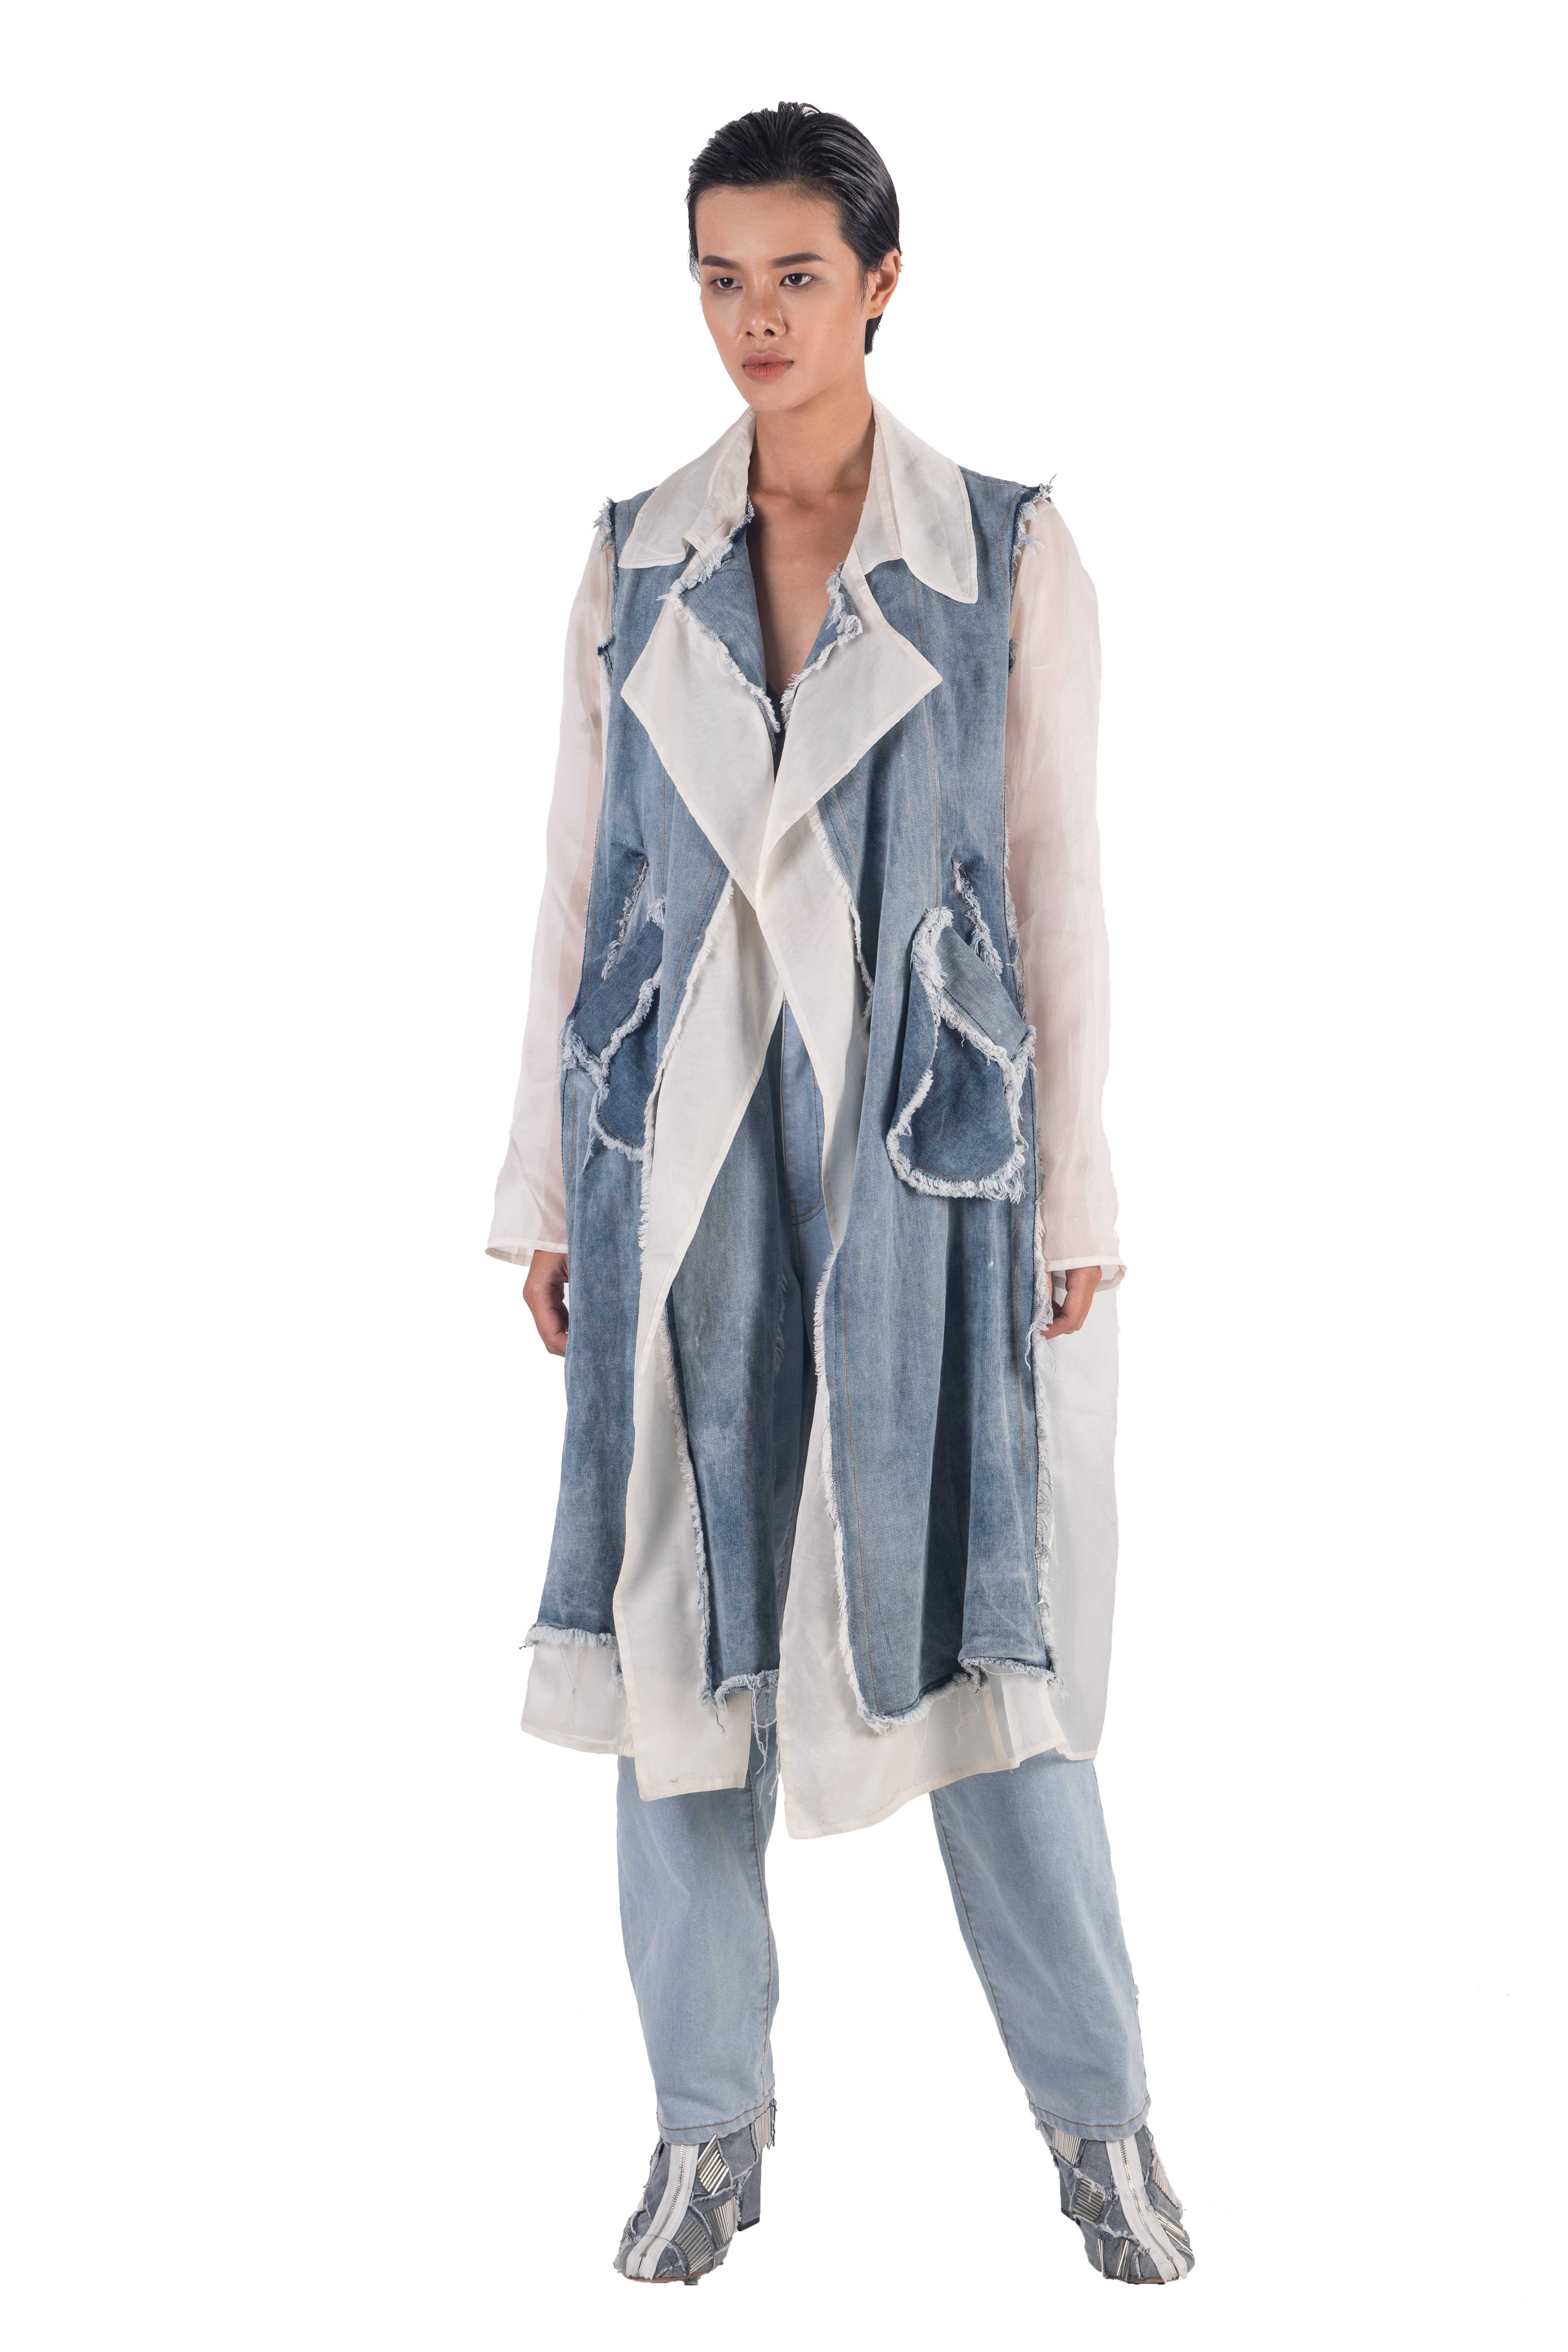 Contrasting white silk organza and washed denim panels coat with frayed egdes